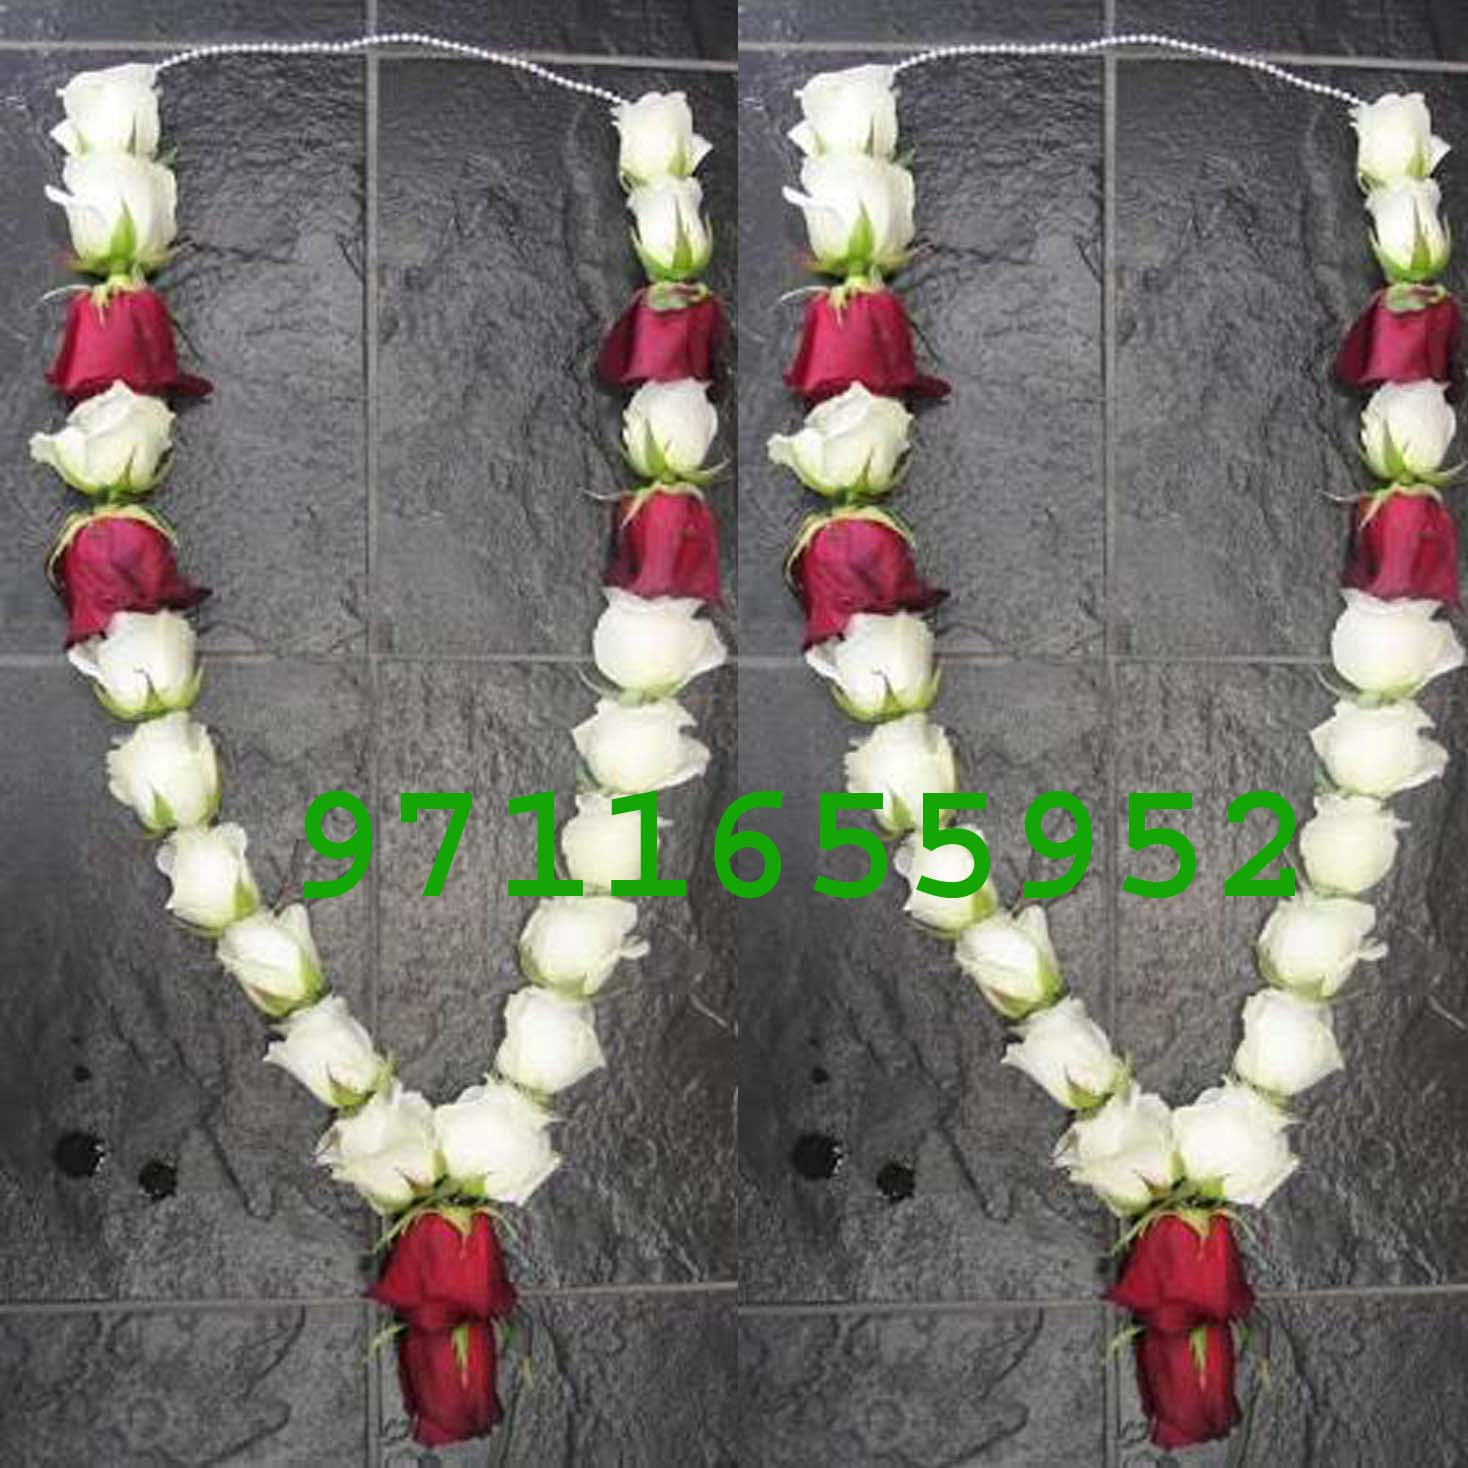 , wedding red and white jaimala haar for anniversary, jaimla price online, buy red roes jaimala online